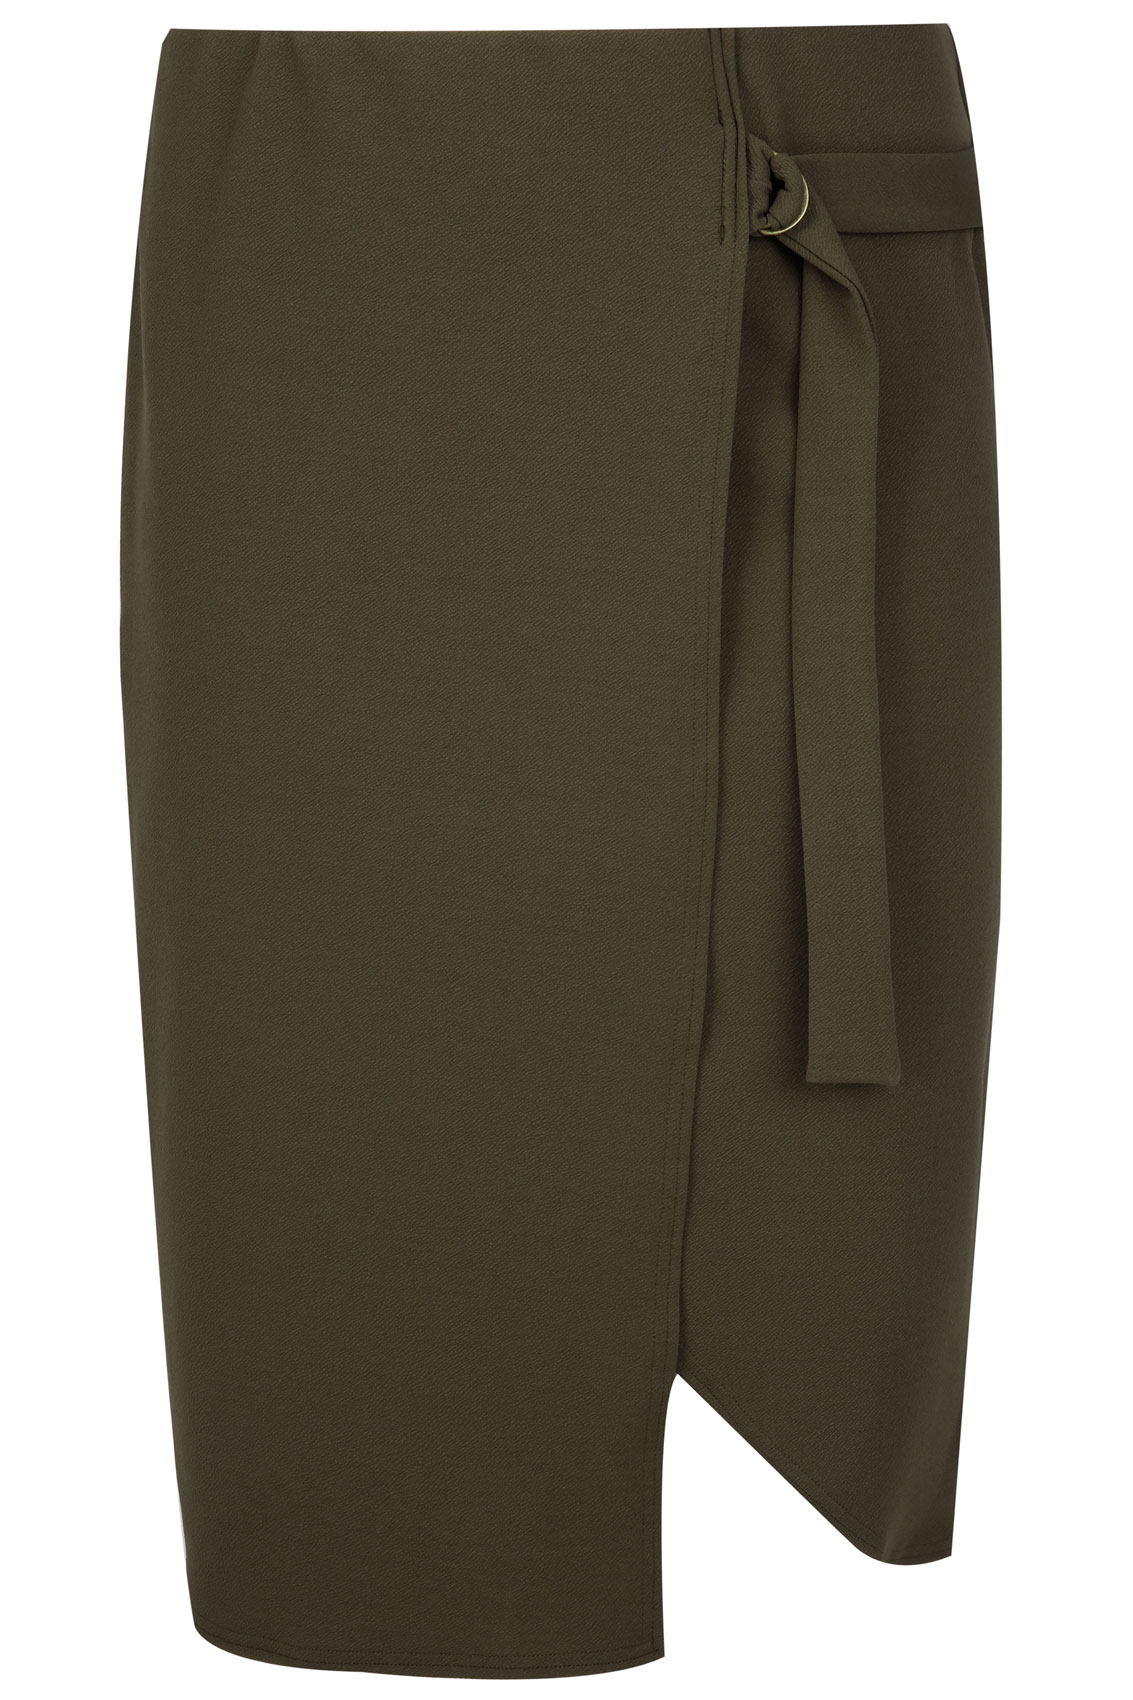 khaki wrap from pencil skirt plus size 16 to 32